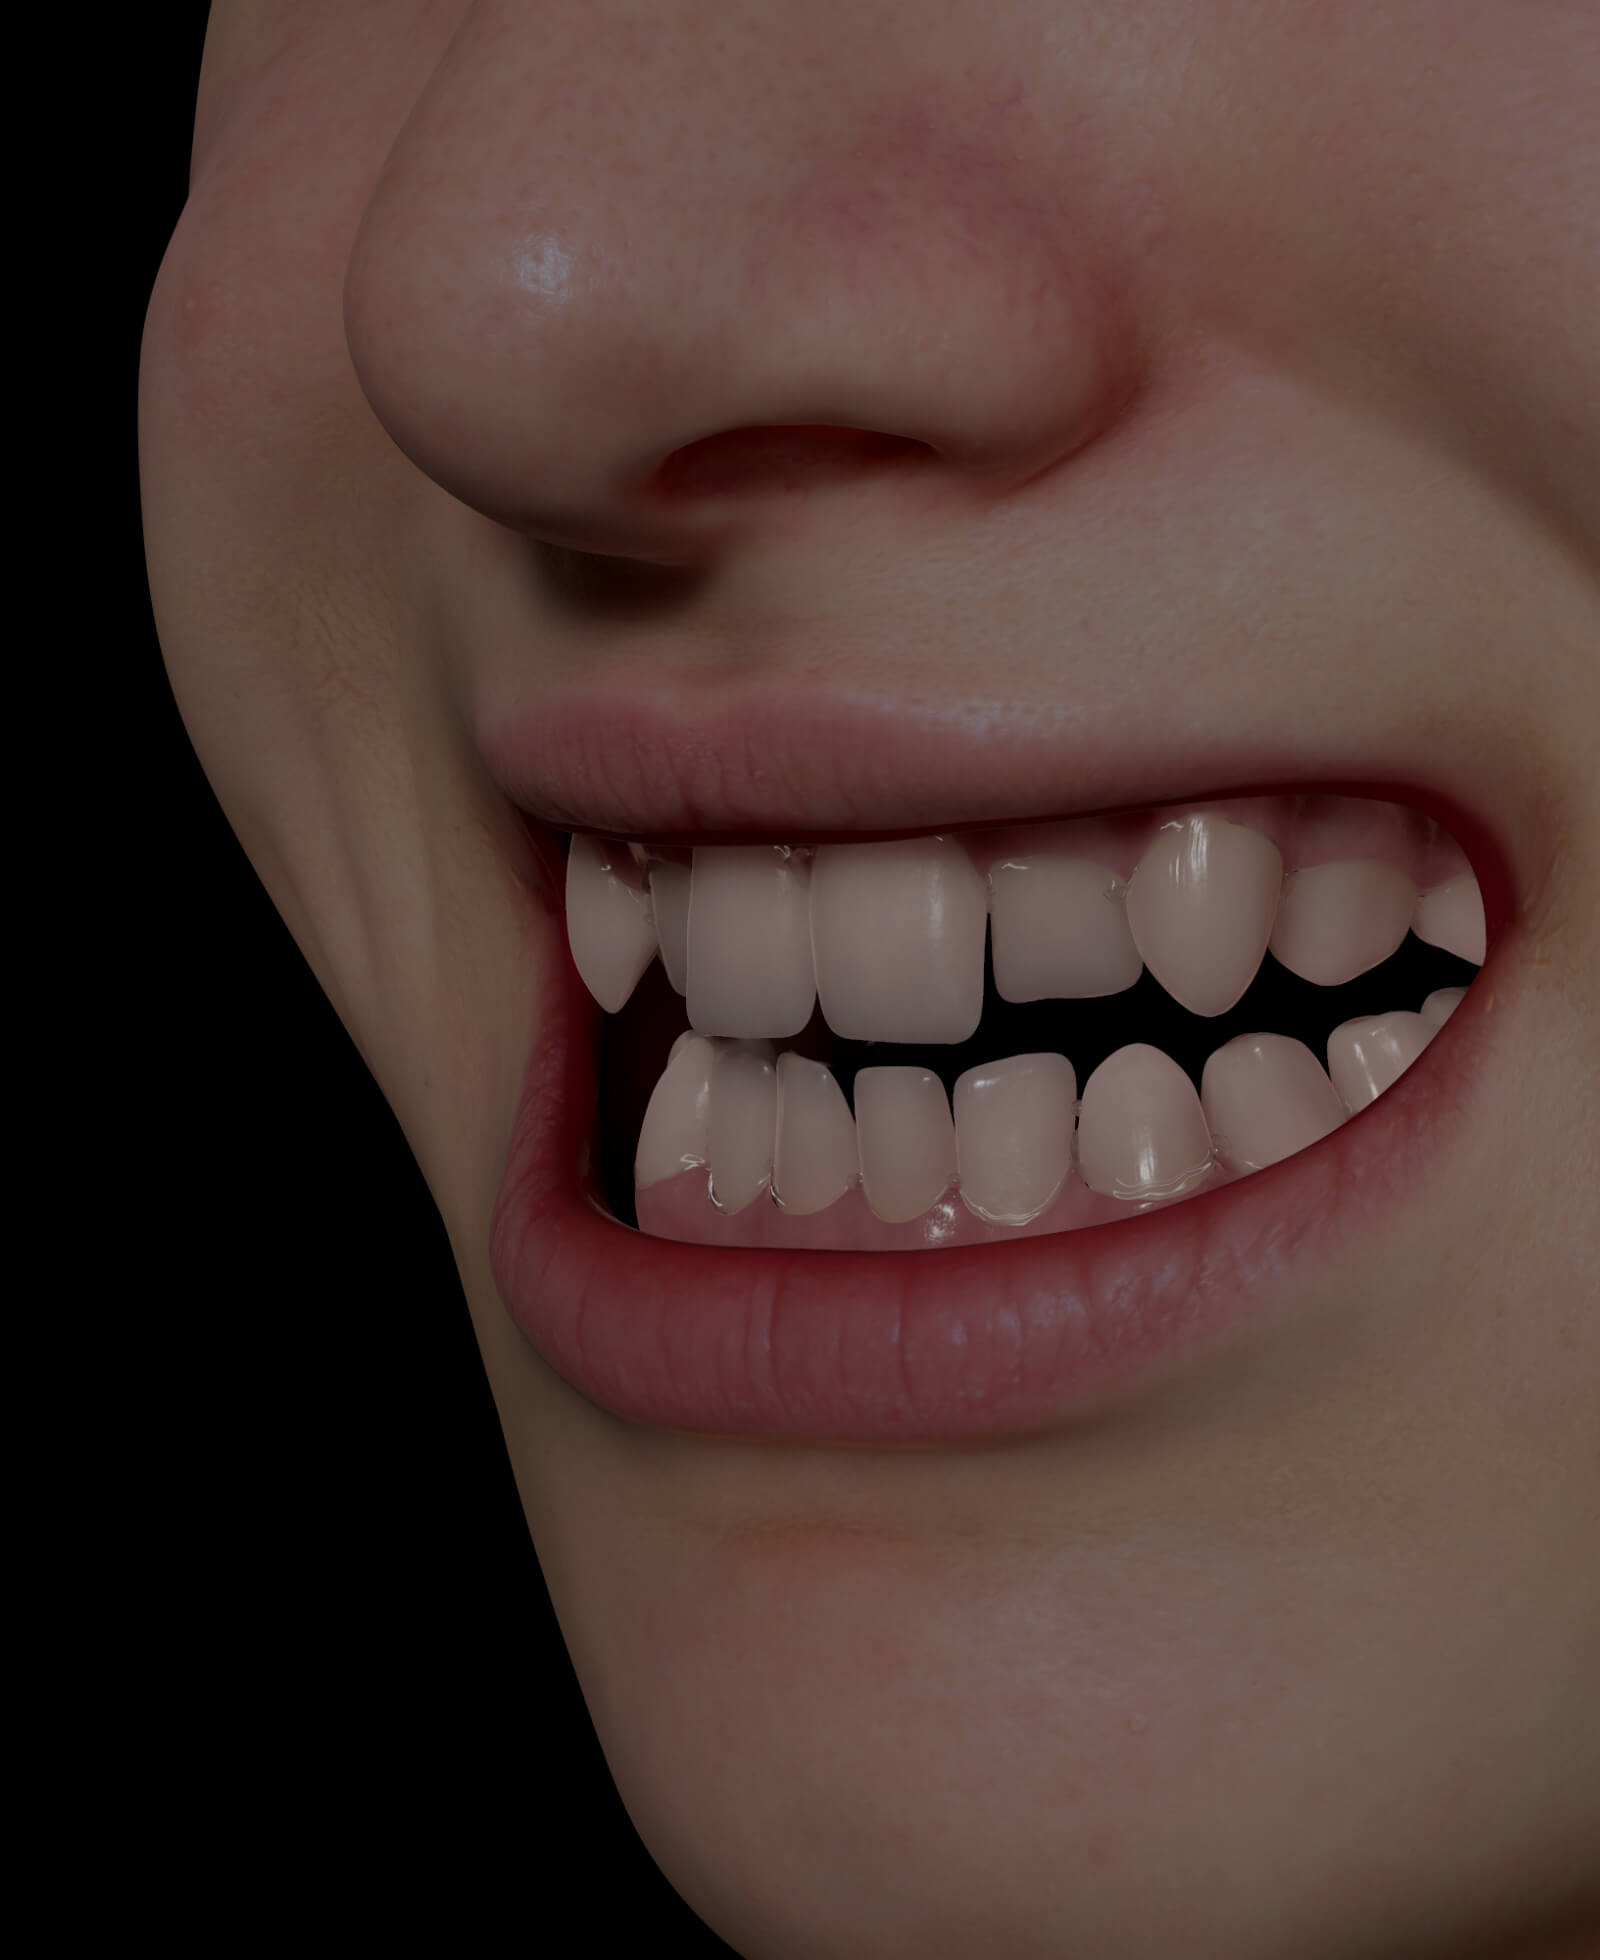 Clinique Chloé patient with misaligned teeth